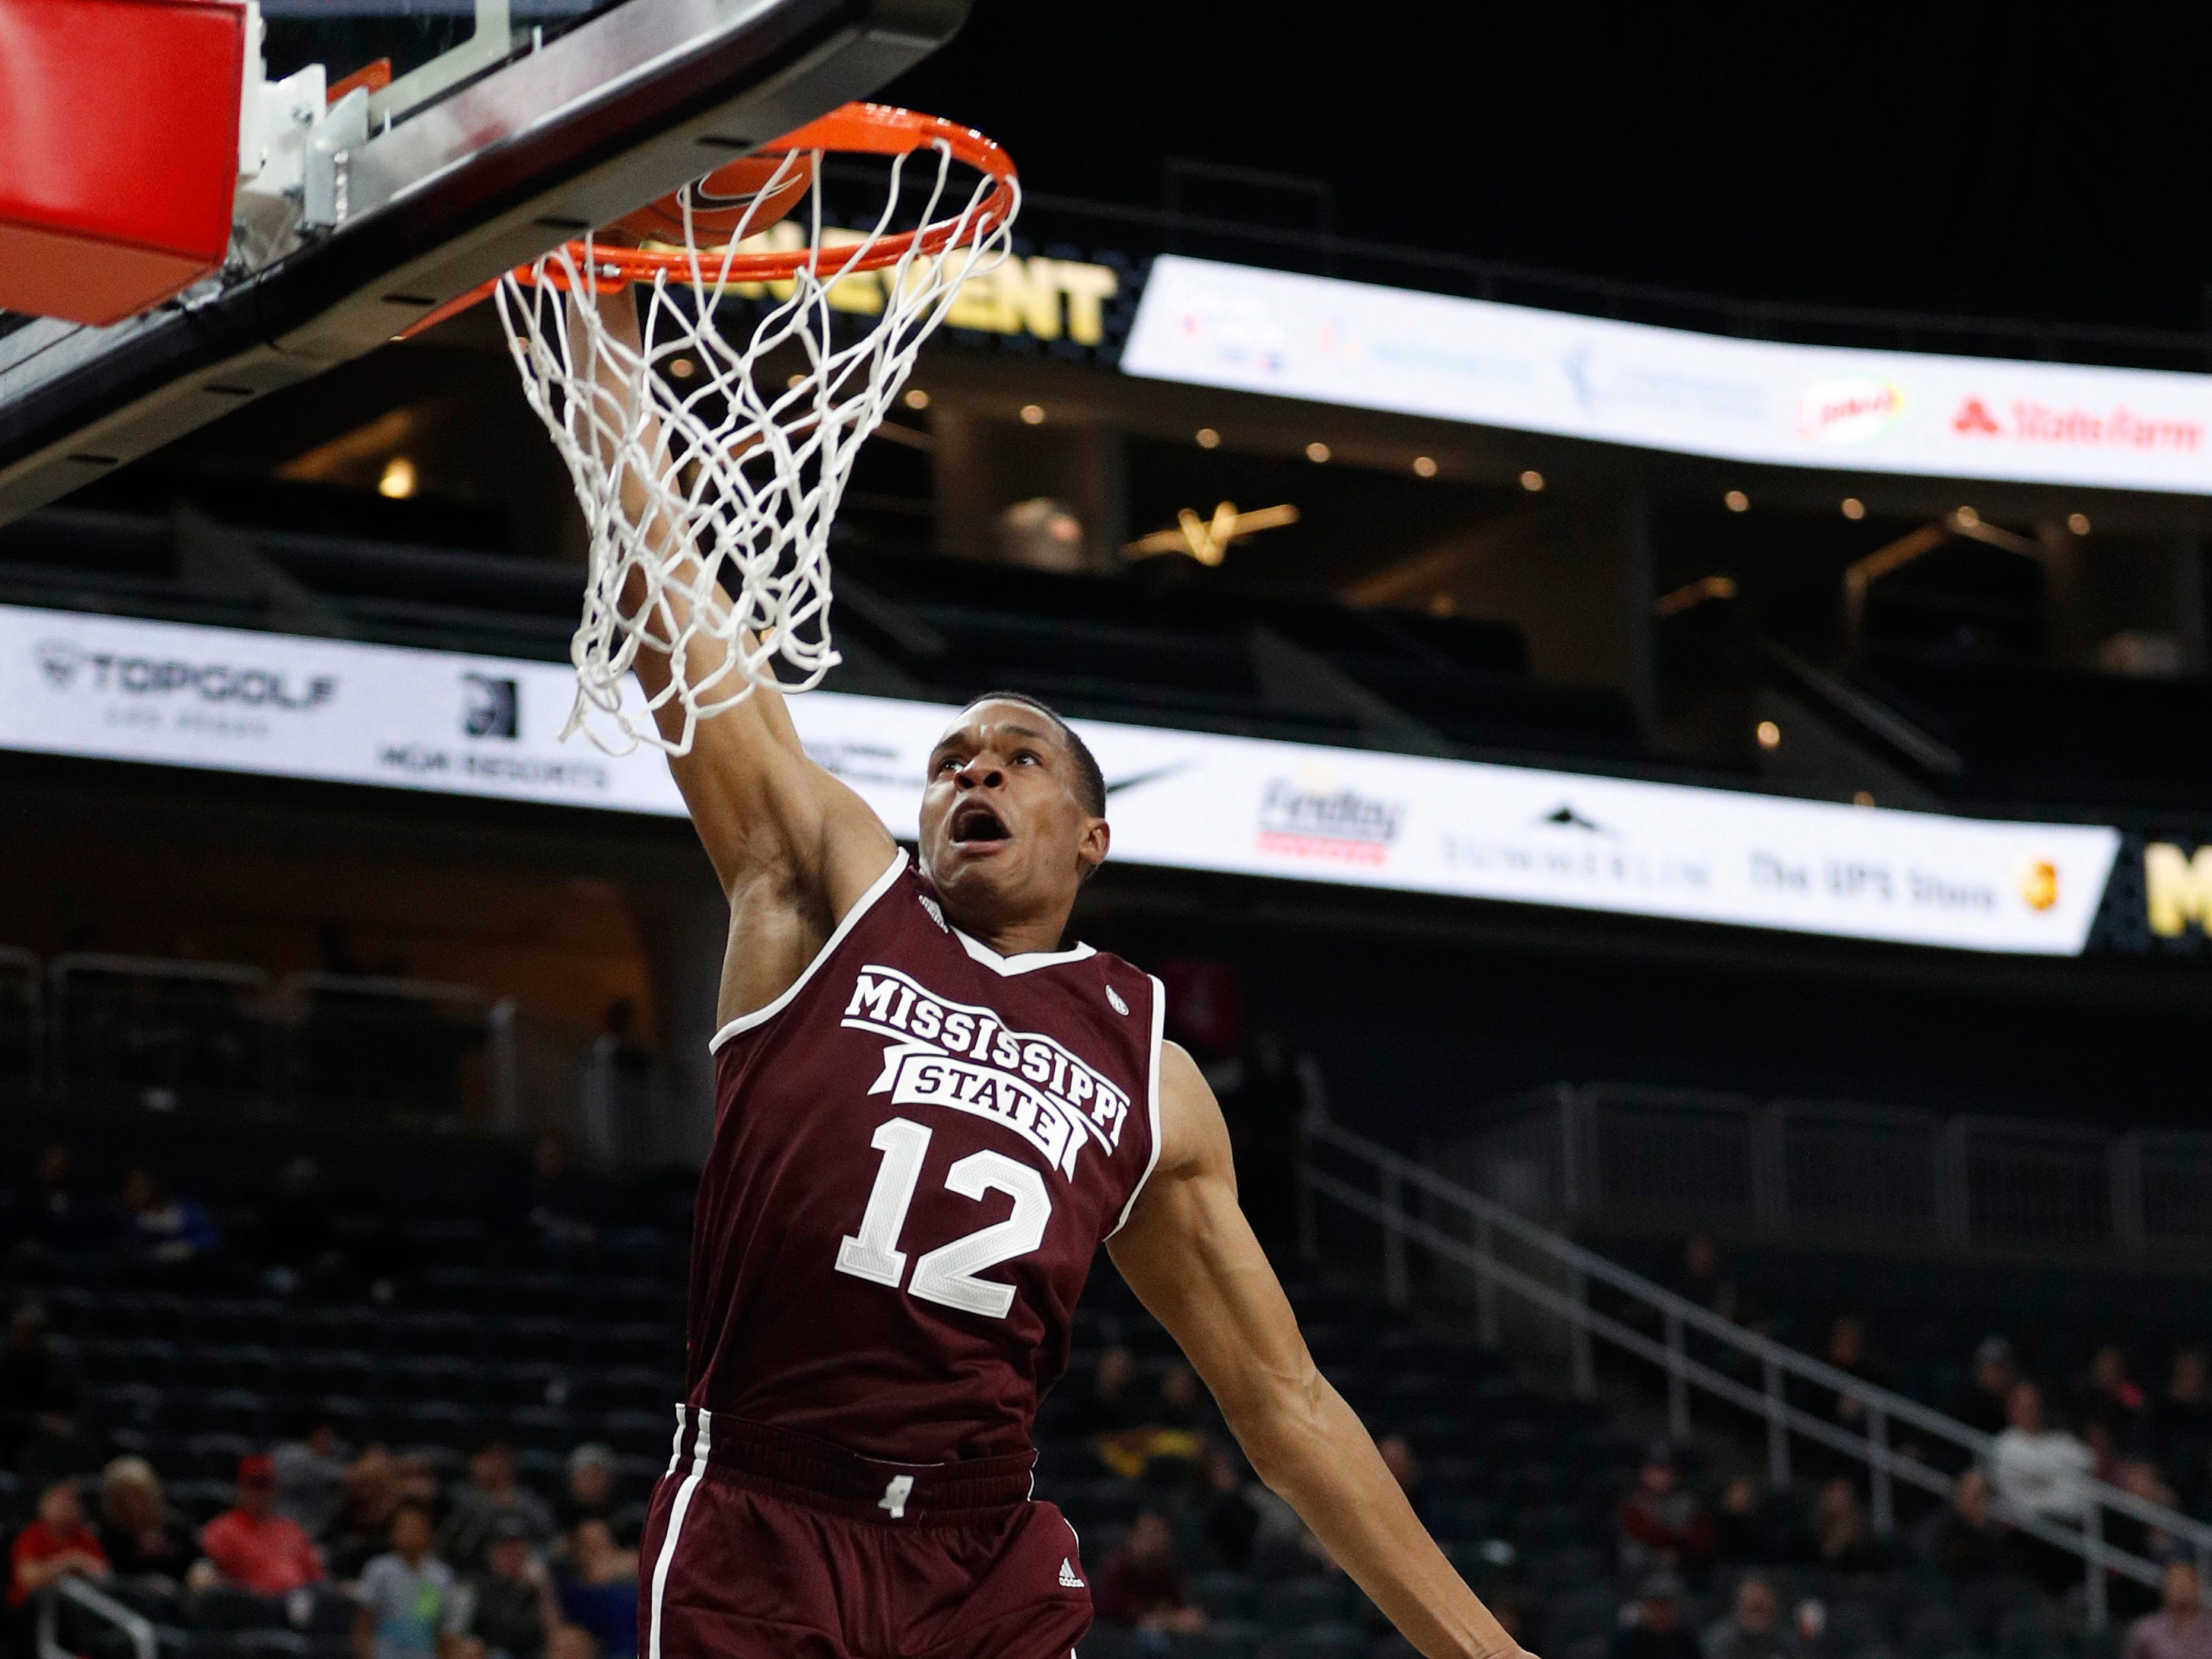 Mississippi State's Robert Woodard II (12) dunks over Arizona State's Taeshon Cherry (35) during the second half of an NCAA college basketball game, Monday, Nov. 19, 2018, in Las Vegas. Arizona State won 72-67.